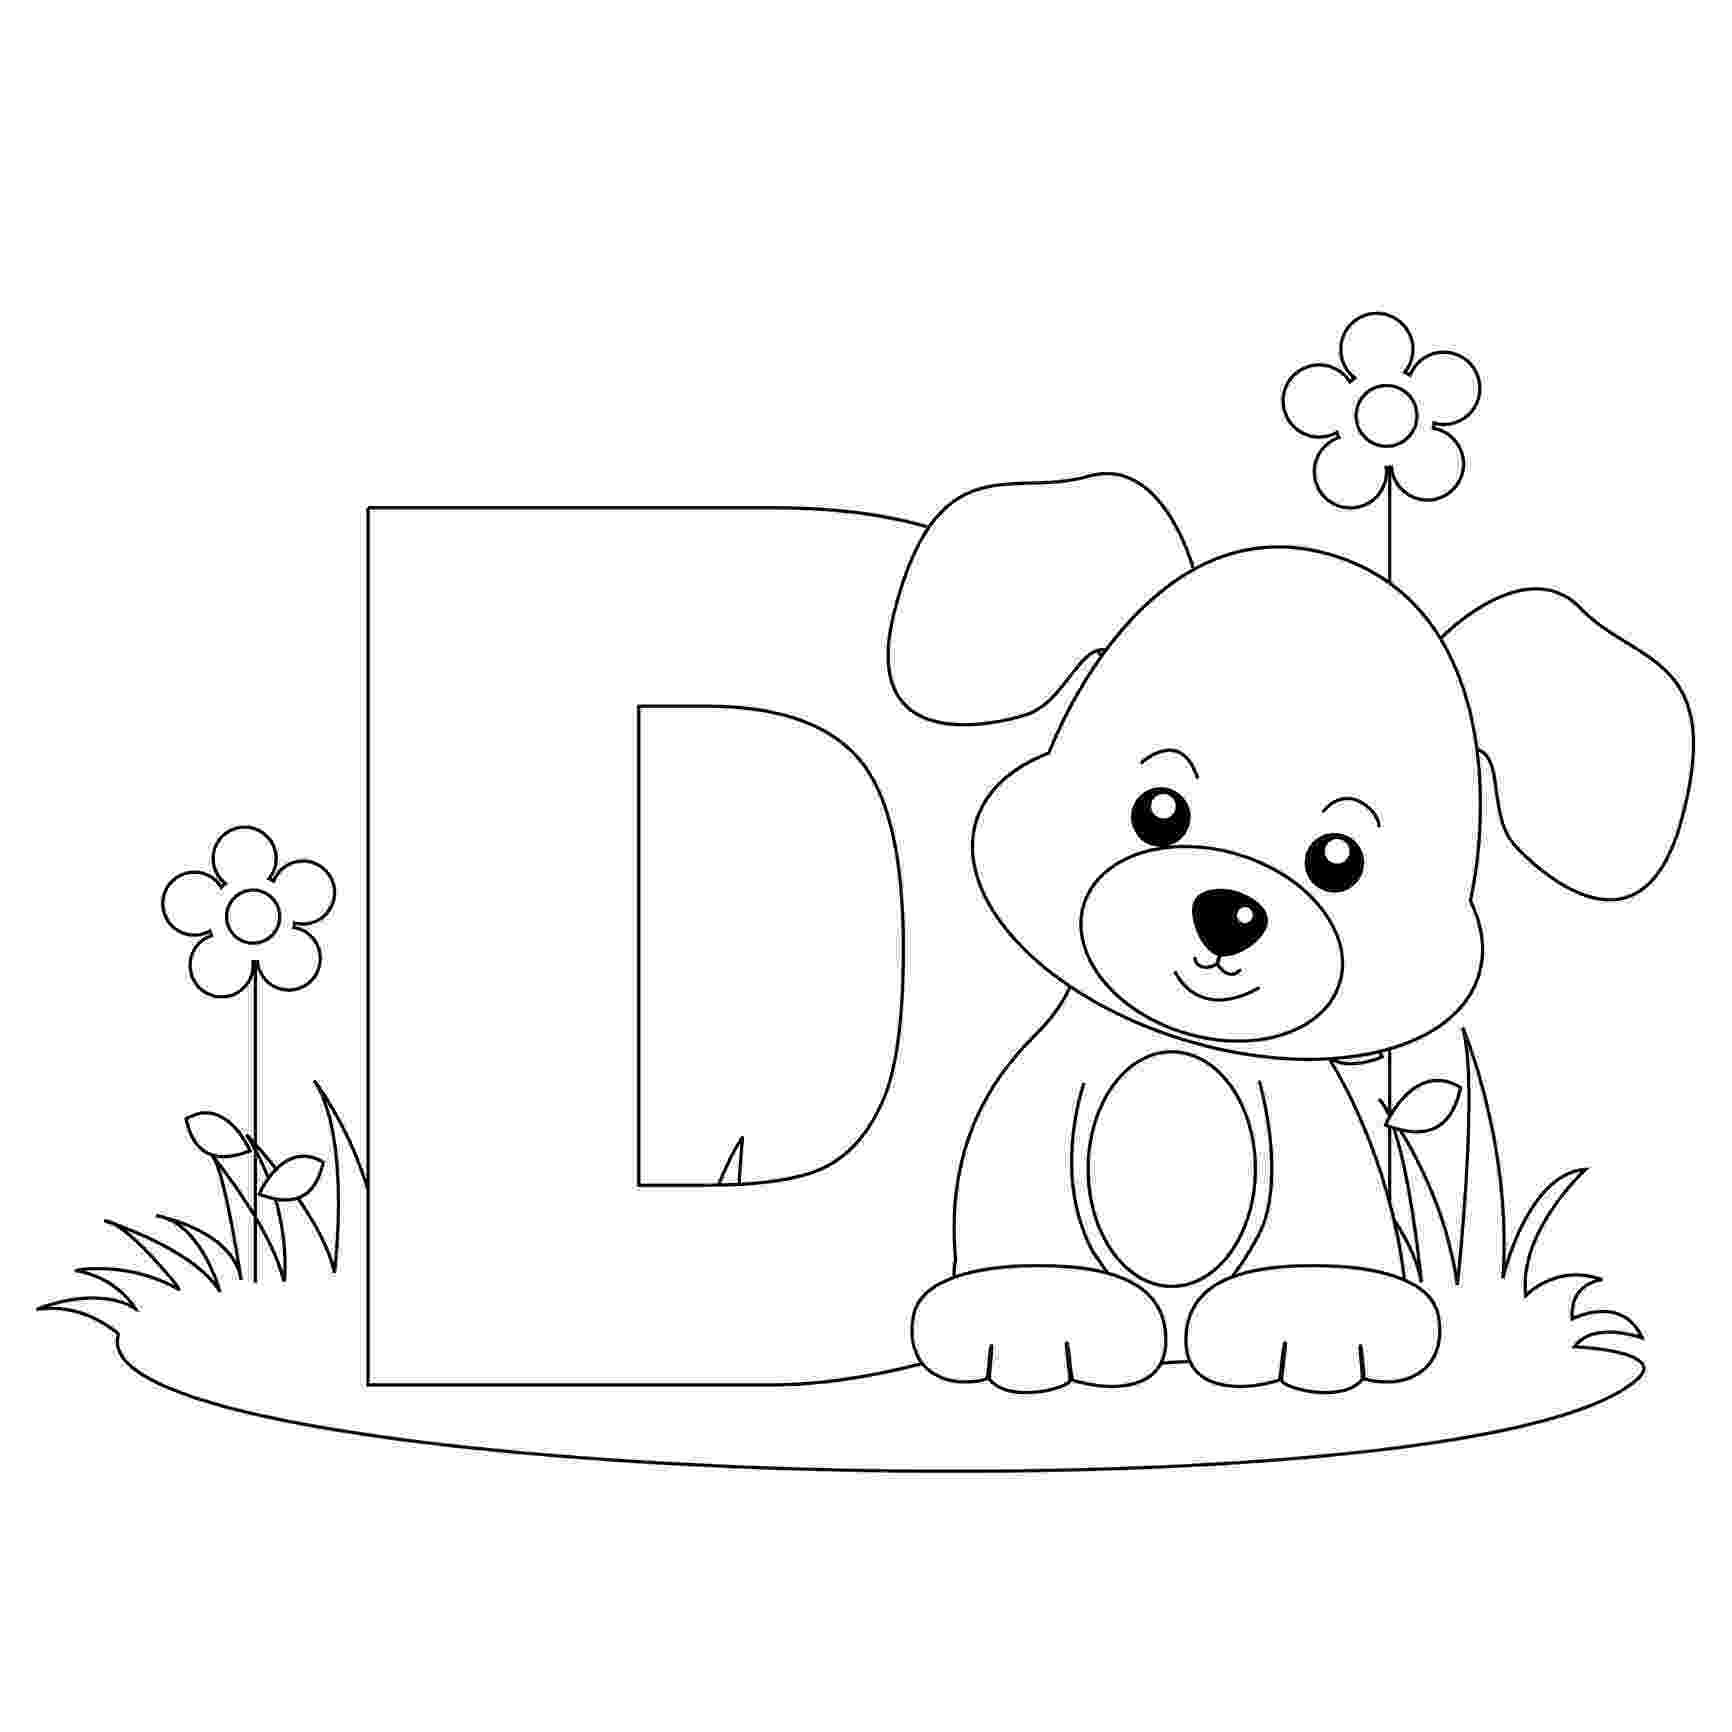 alphabet coloring pages for preschoolers letter w alphabet coloring pages 3 free printable for pages preschoolers coloring alphabet